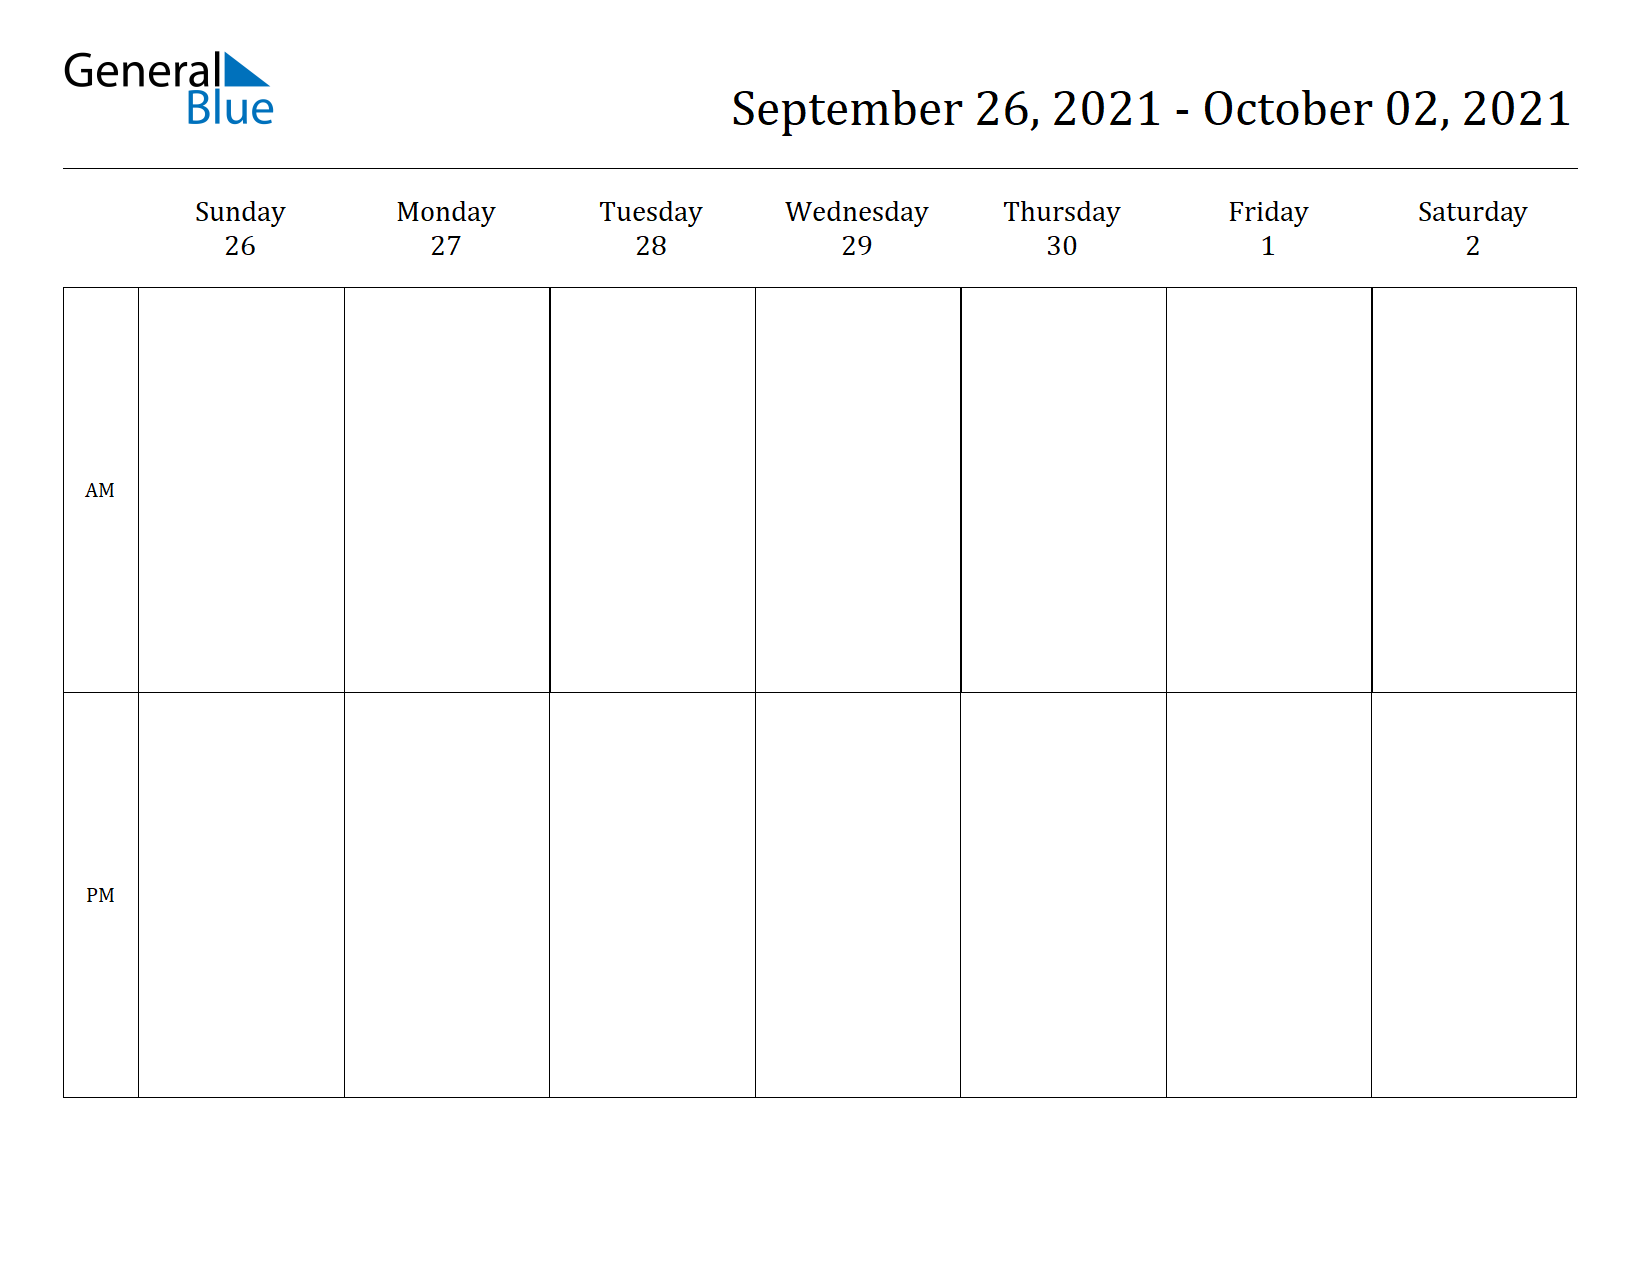 Weekly Calendar for Sep 26, 2021 to Oct 02, 2021